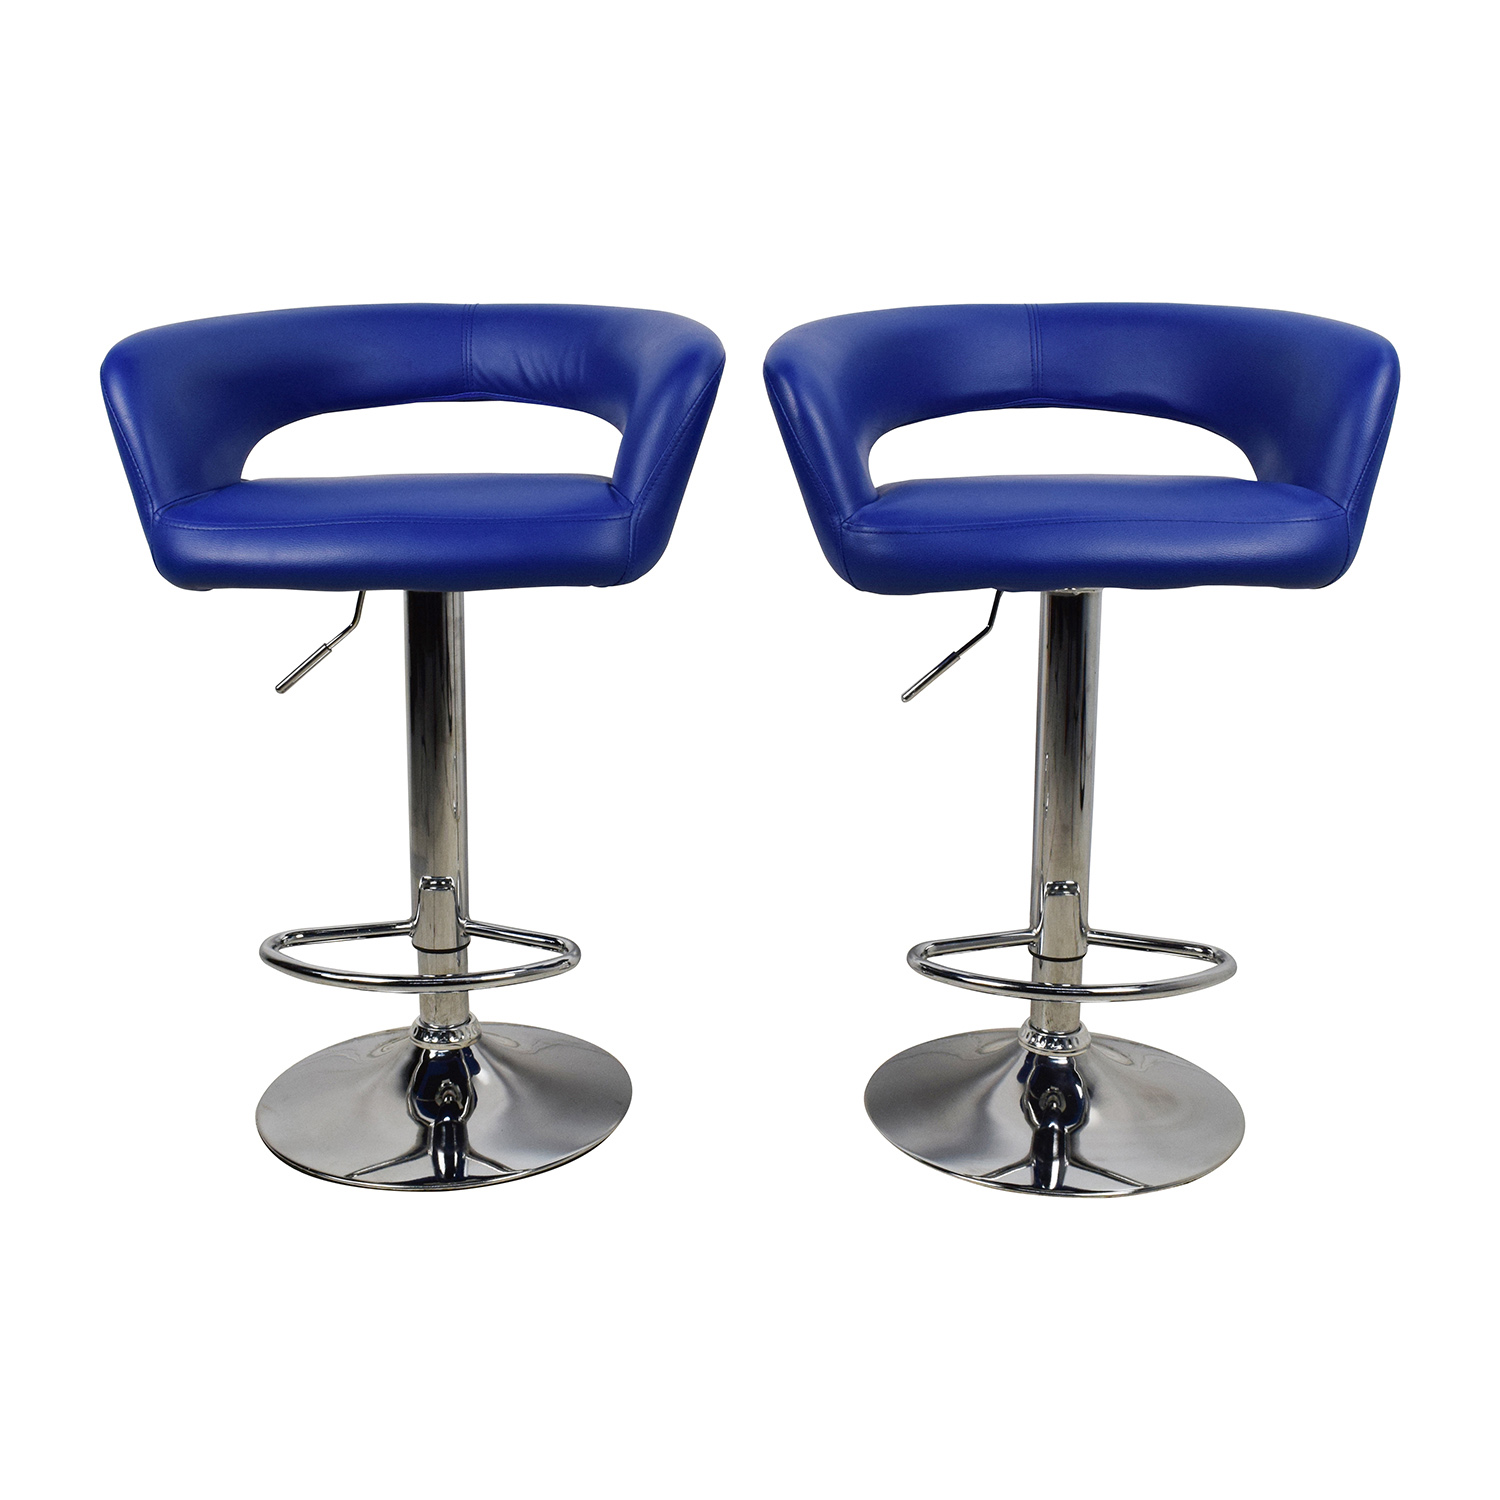 All Modern All Modern Blue Leather Adjustable Height Swivel Bar Stools dimensions